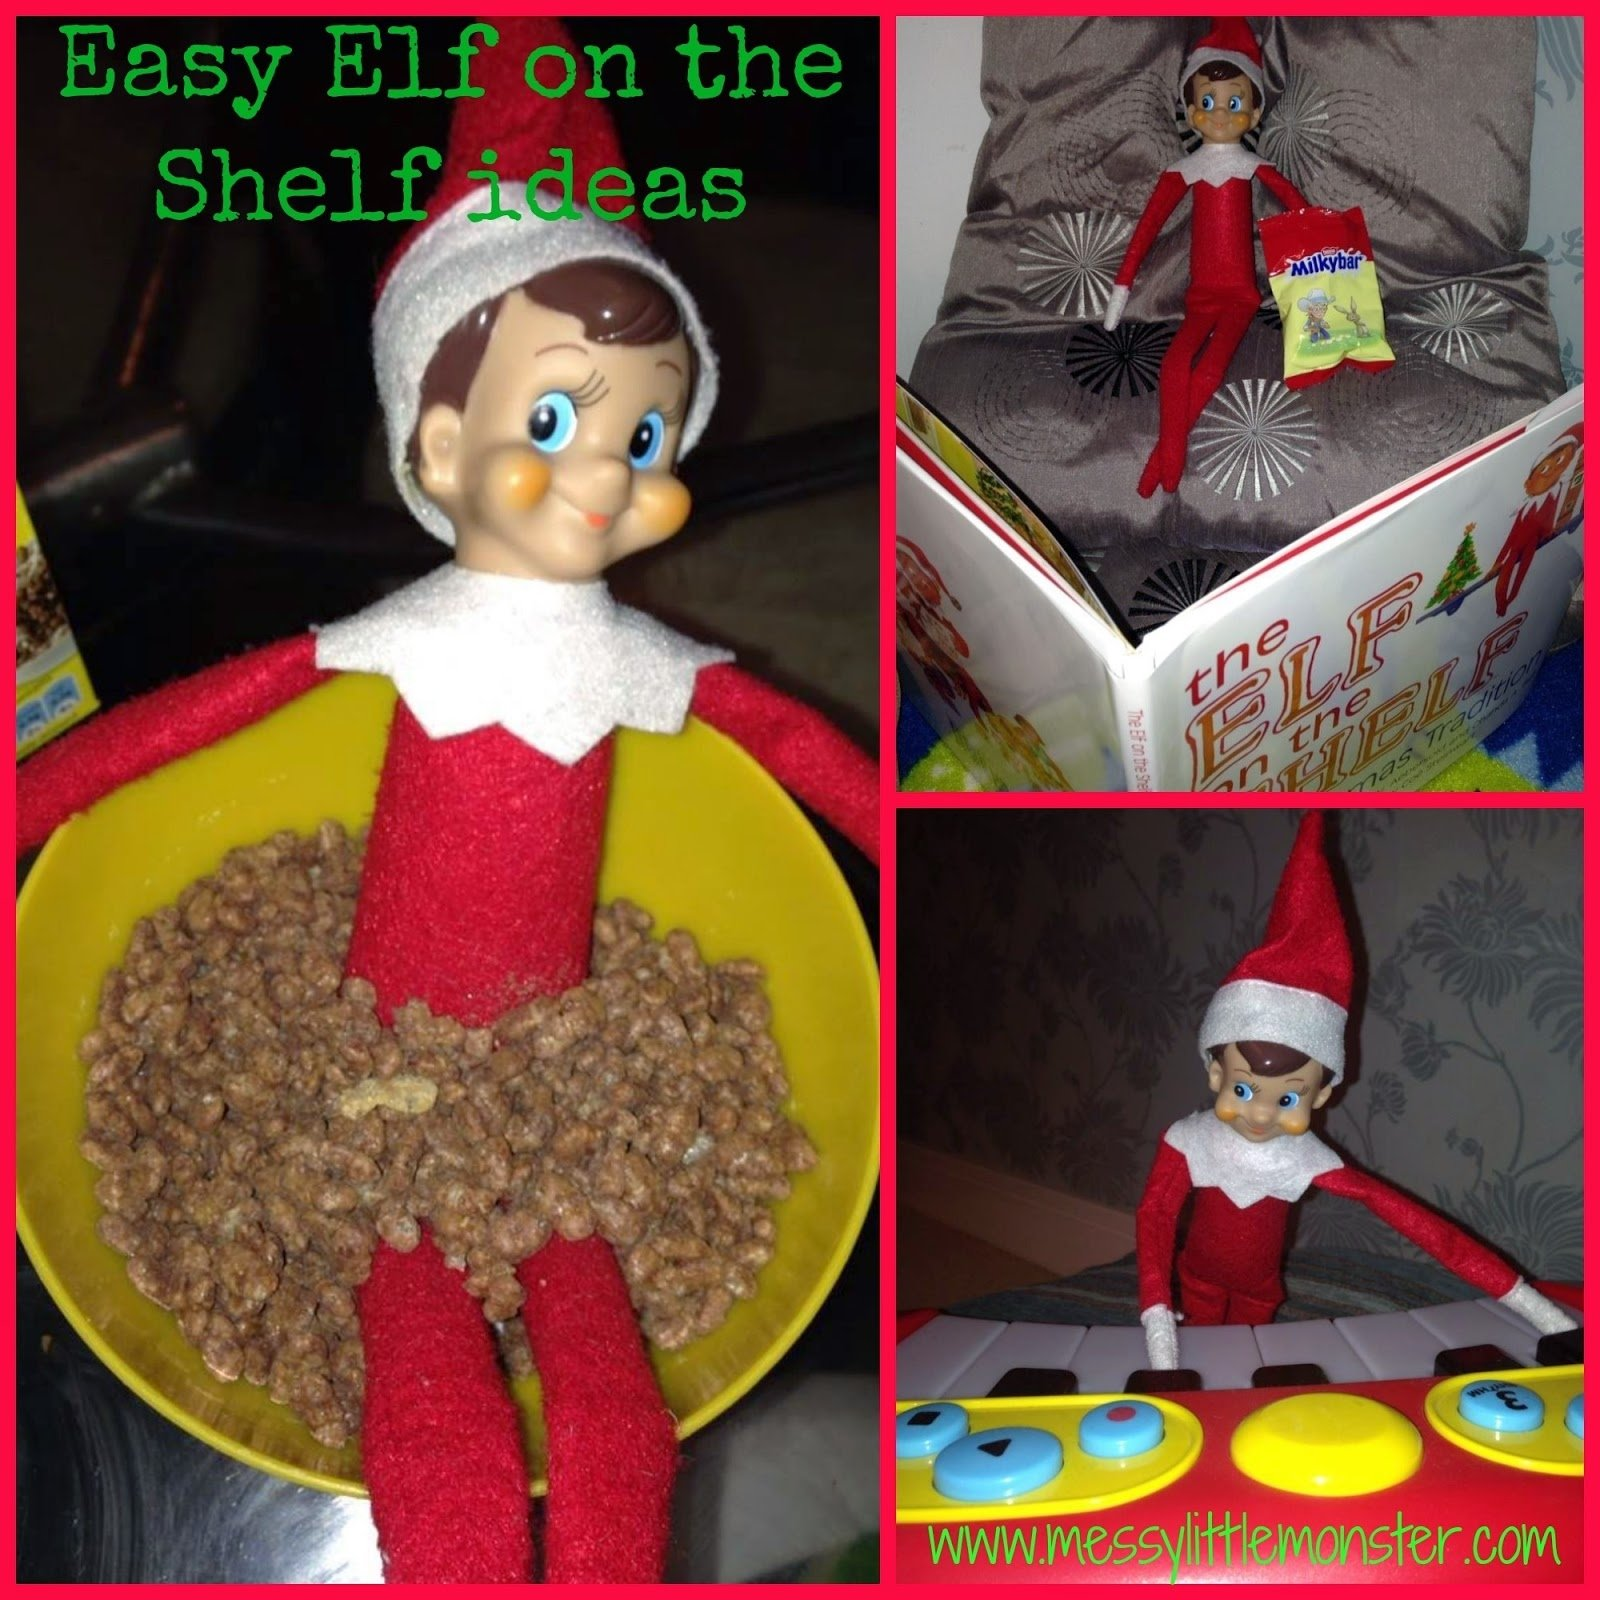 10 Unique Elf On The Self Ideas easy elf on the shelf ideas messy little monster 3